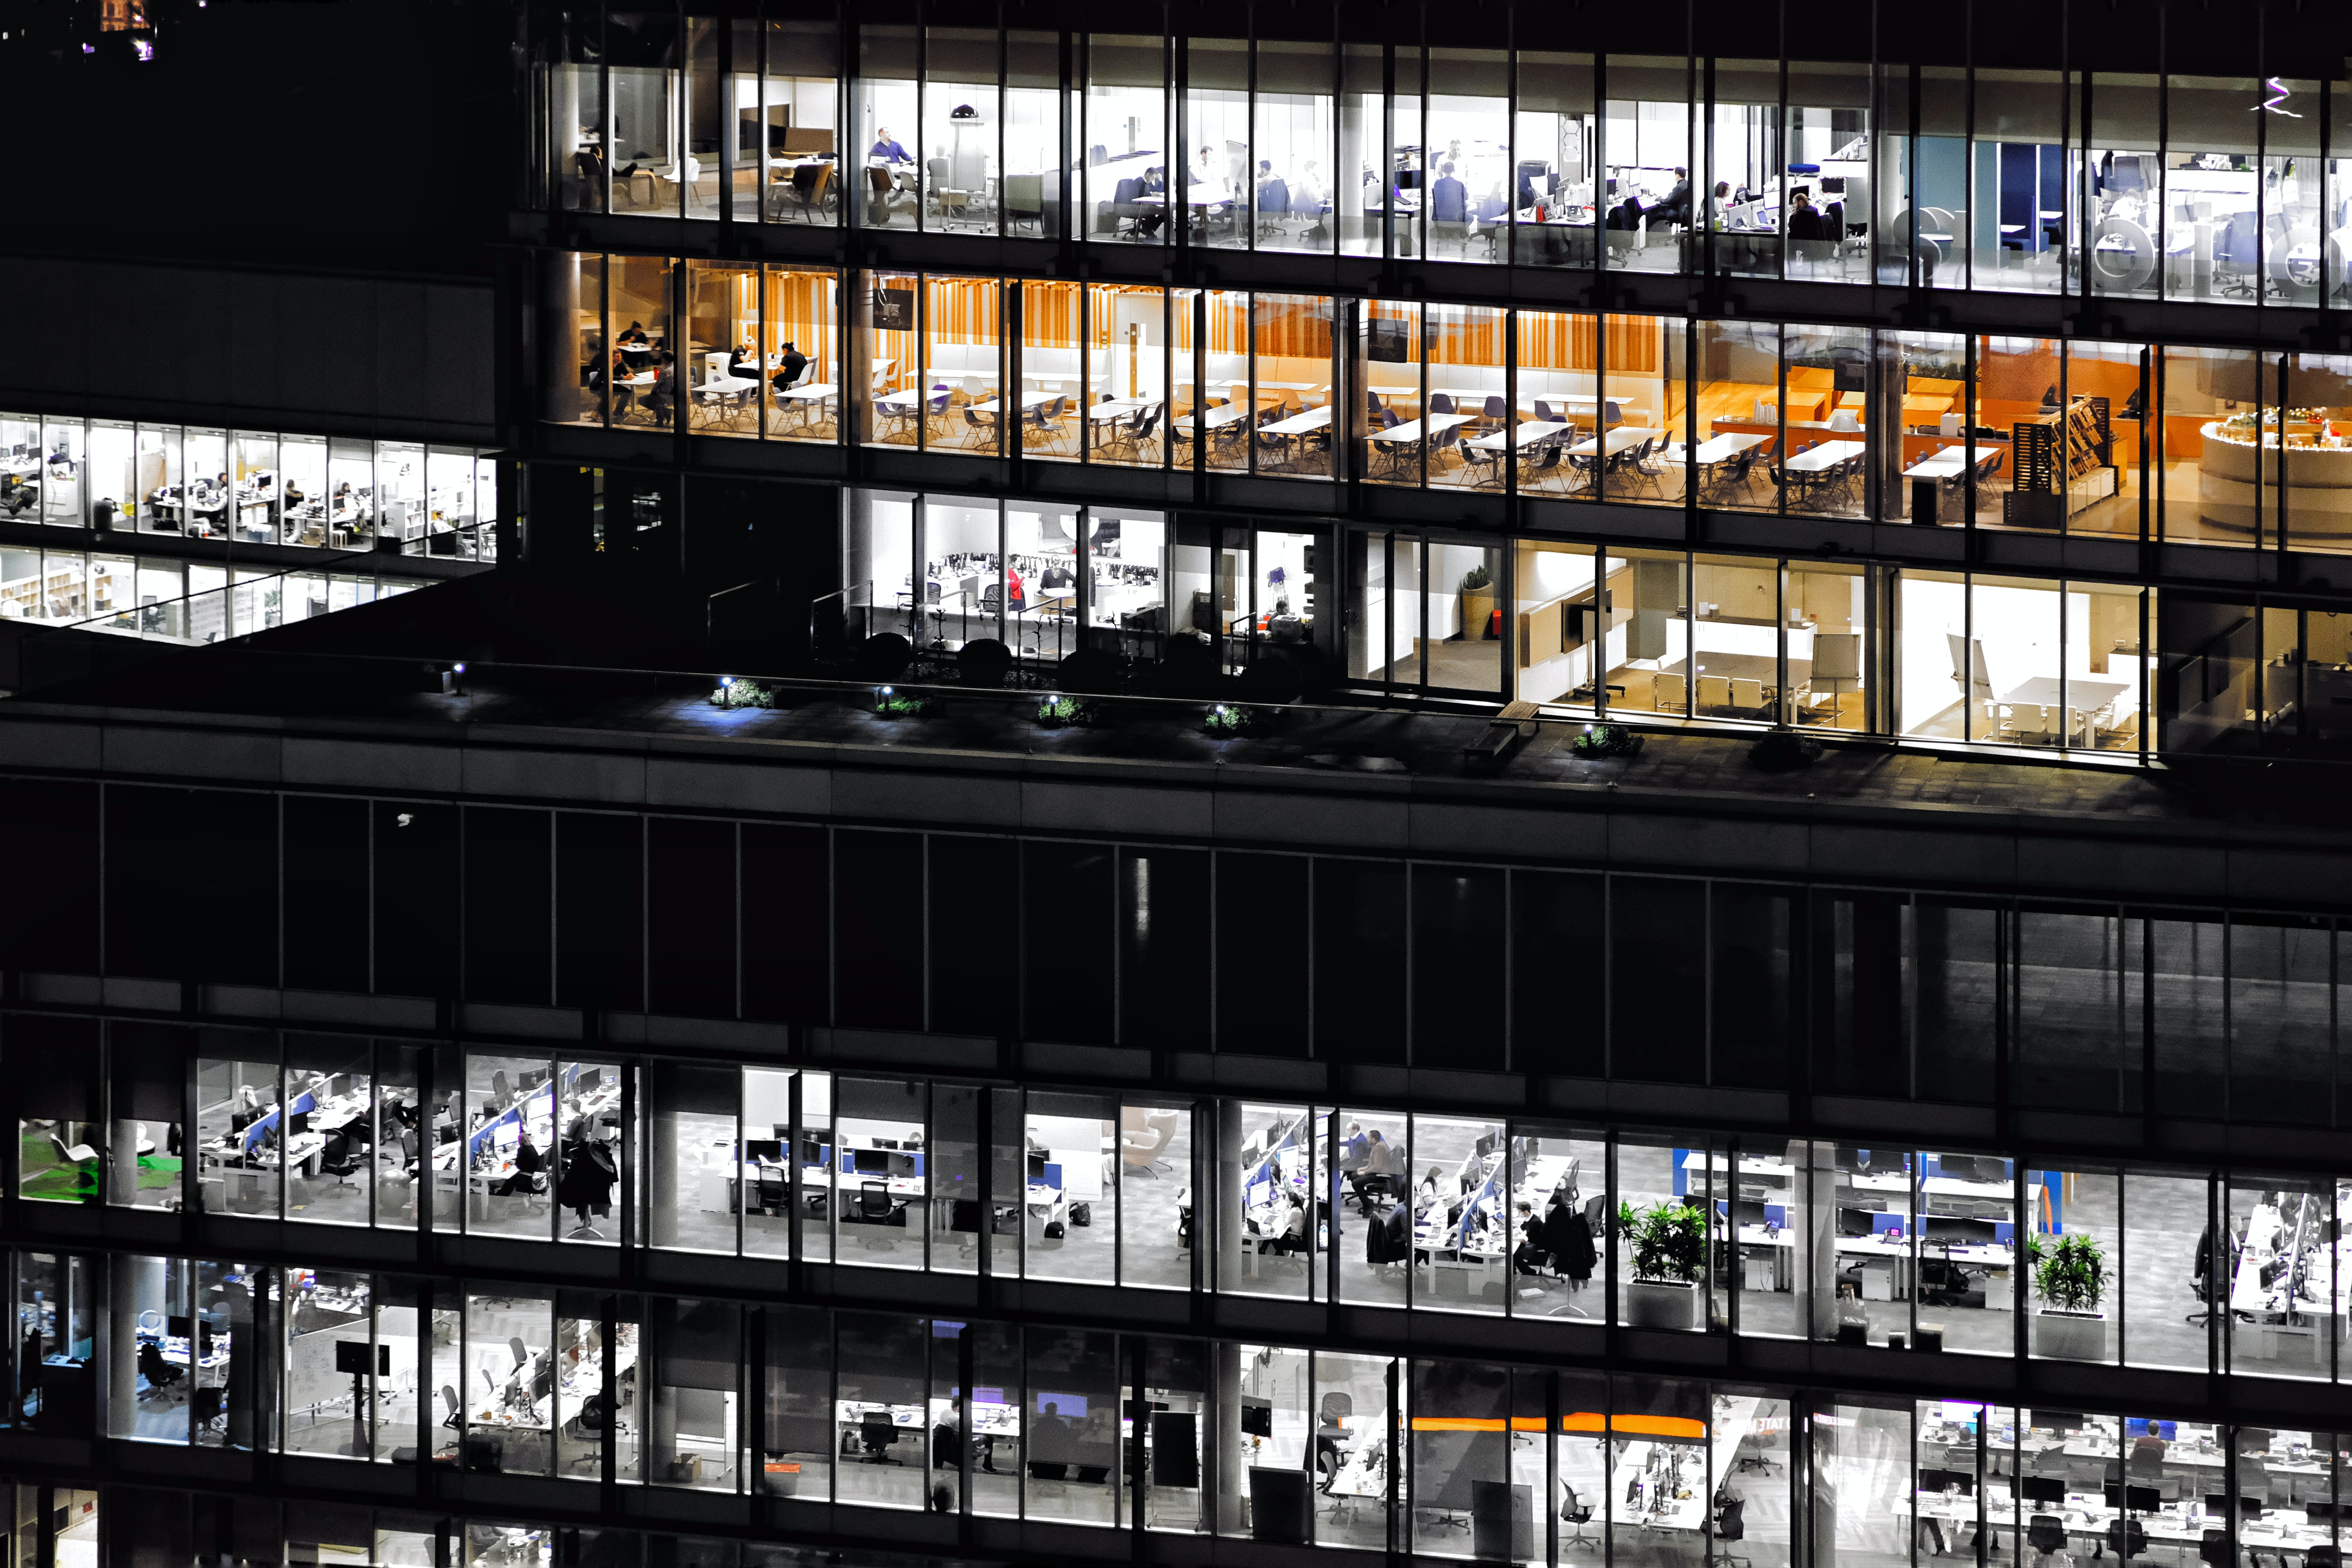 Landlords are looking to move into the flexible workspace market. Photo via unsplash